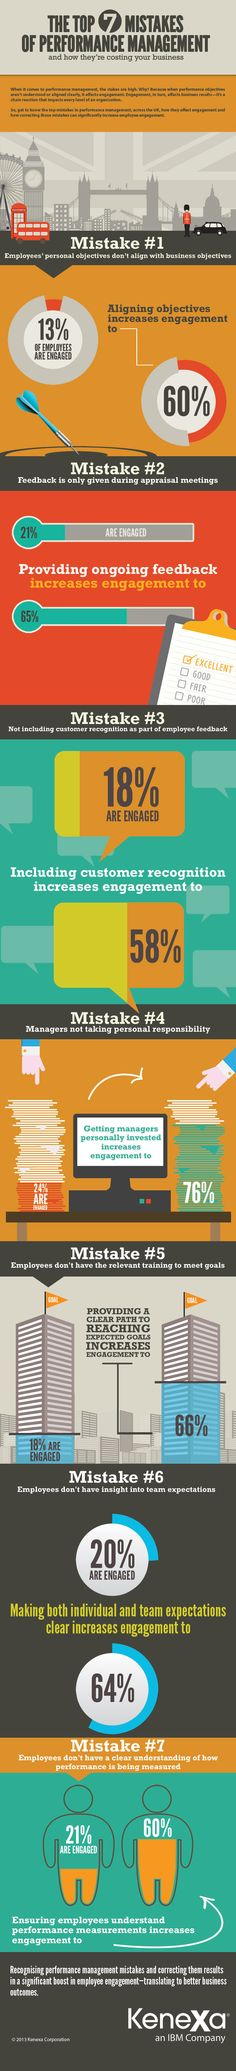 12 best performance management images on pinterest human resources the top 7 mistakes of performance management fandeluxe Choice Image